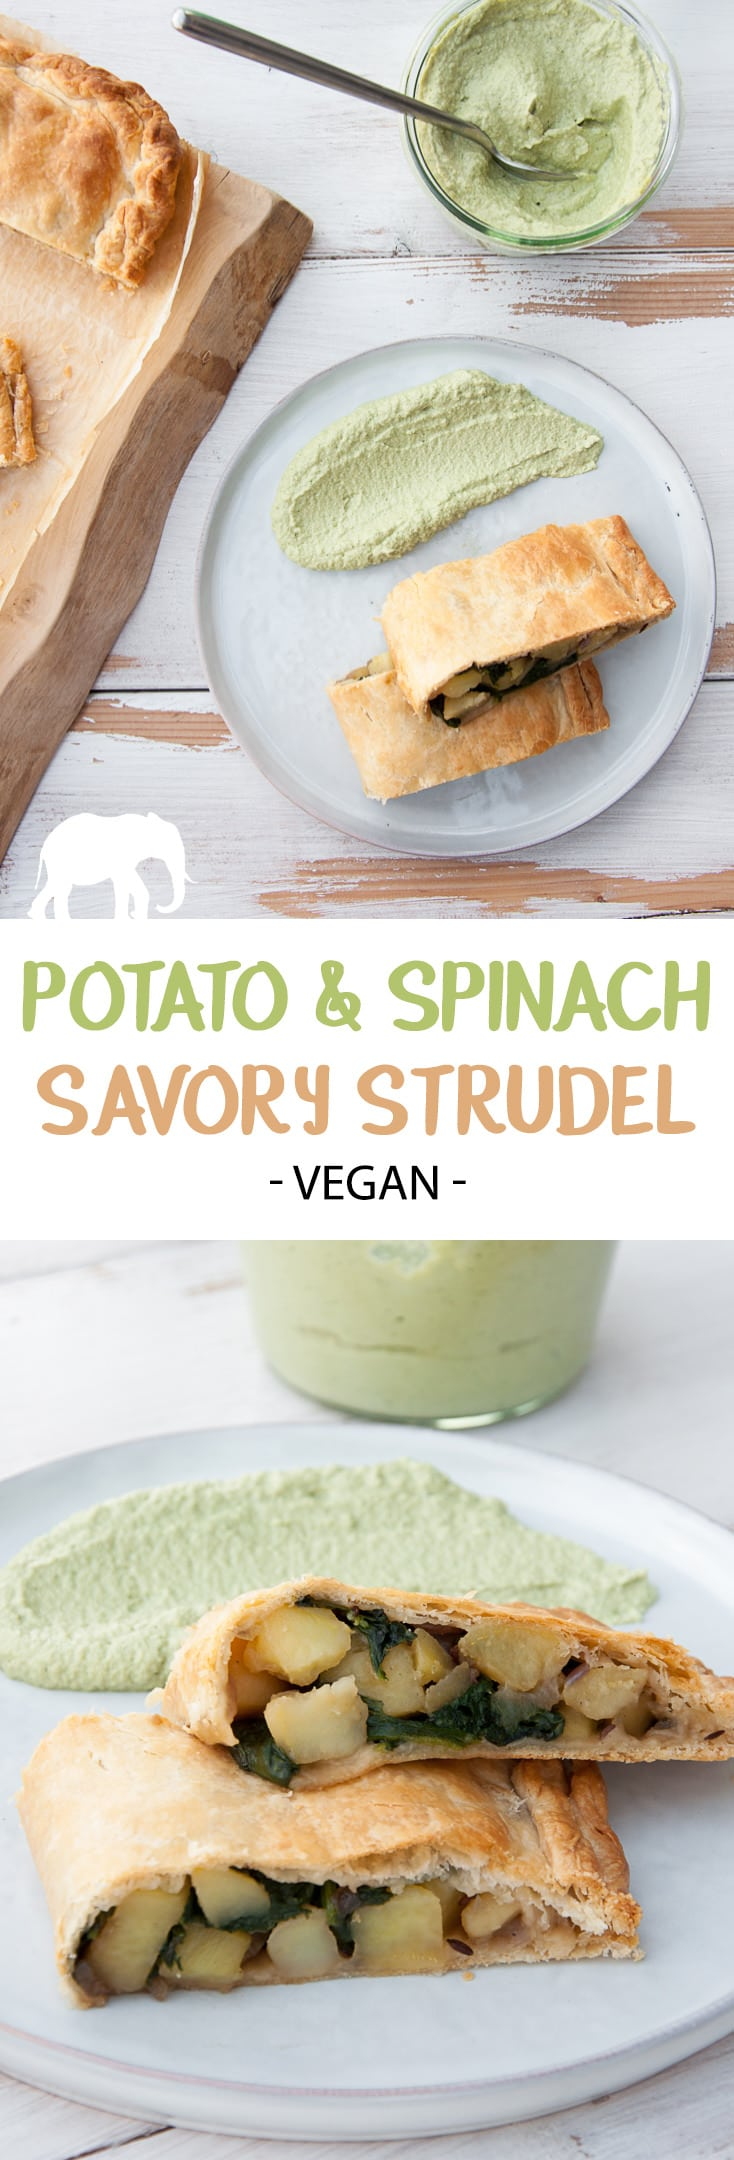 Potato & Spinach Savory Strudel #vegan #potato #spinach #strudel #savory